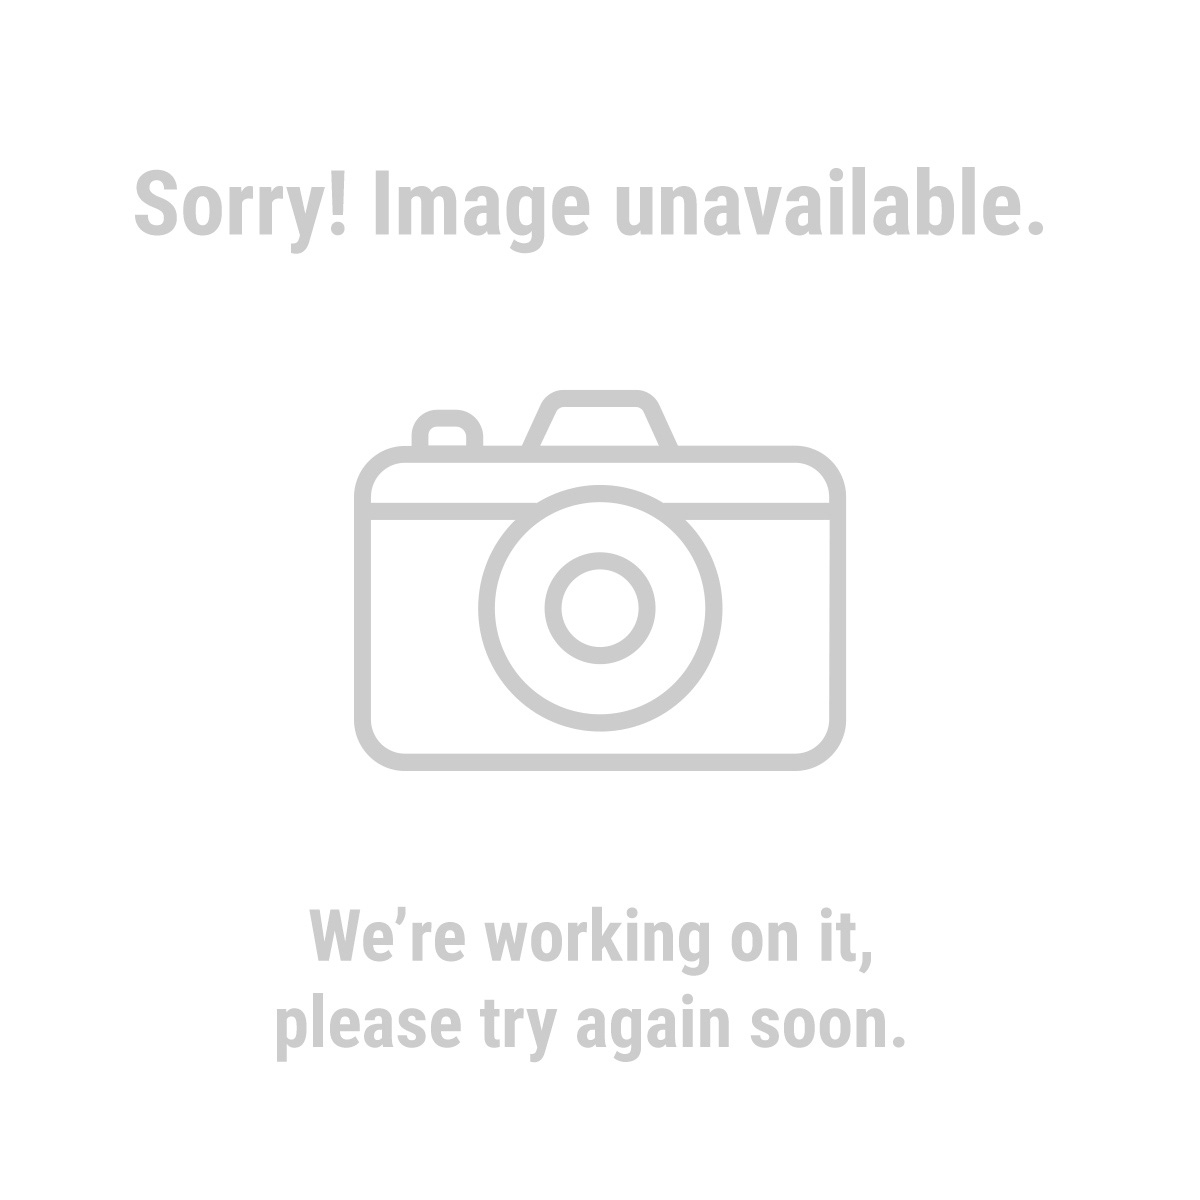 Pacific Hydrostar 68396 158 GPH Miniature Submersible Fountain Pump